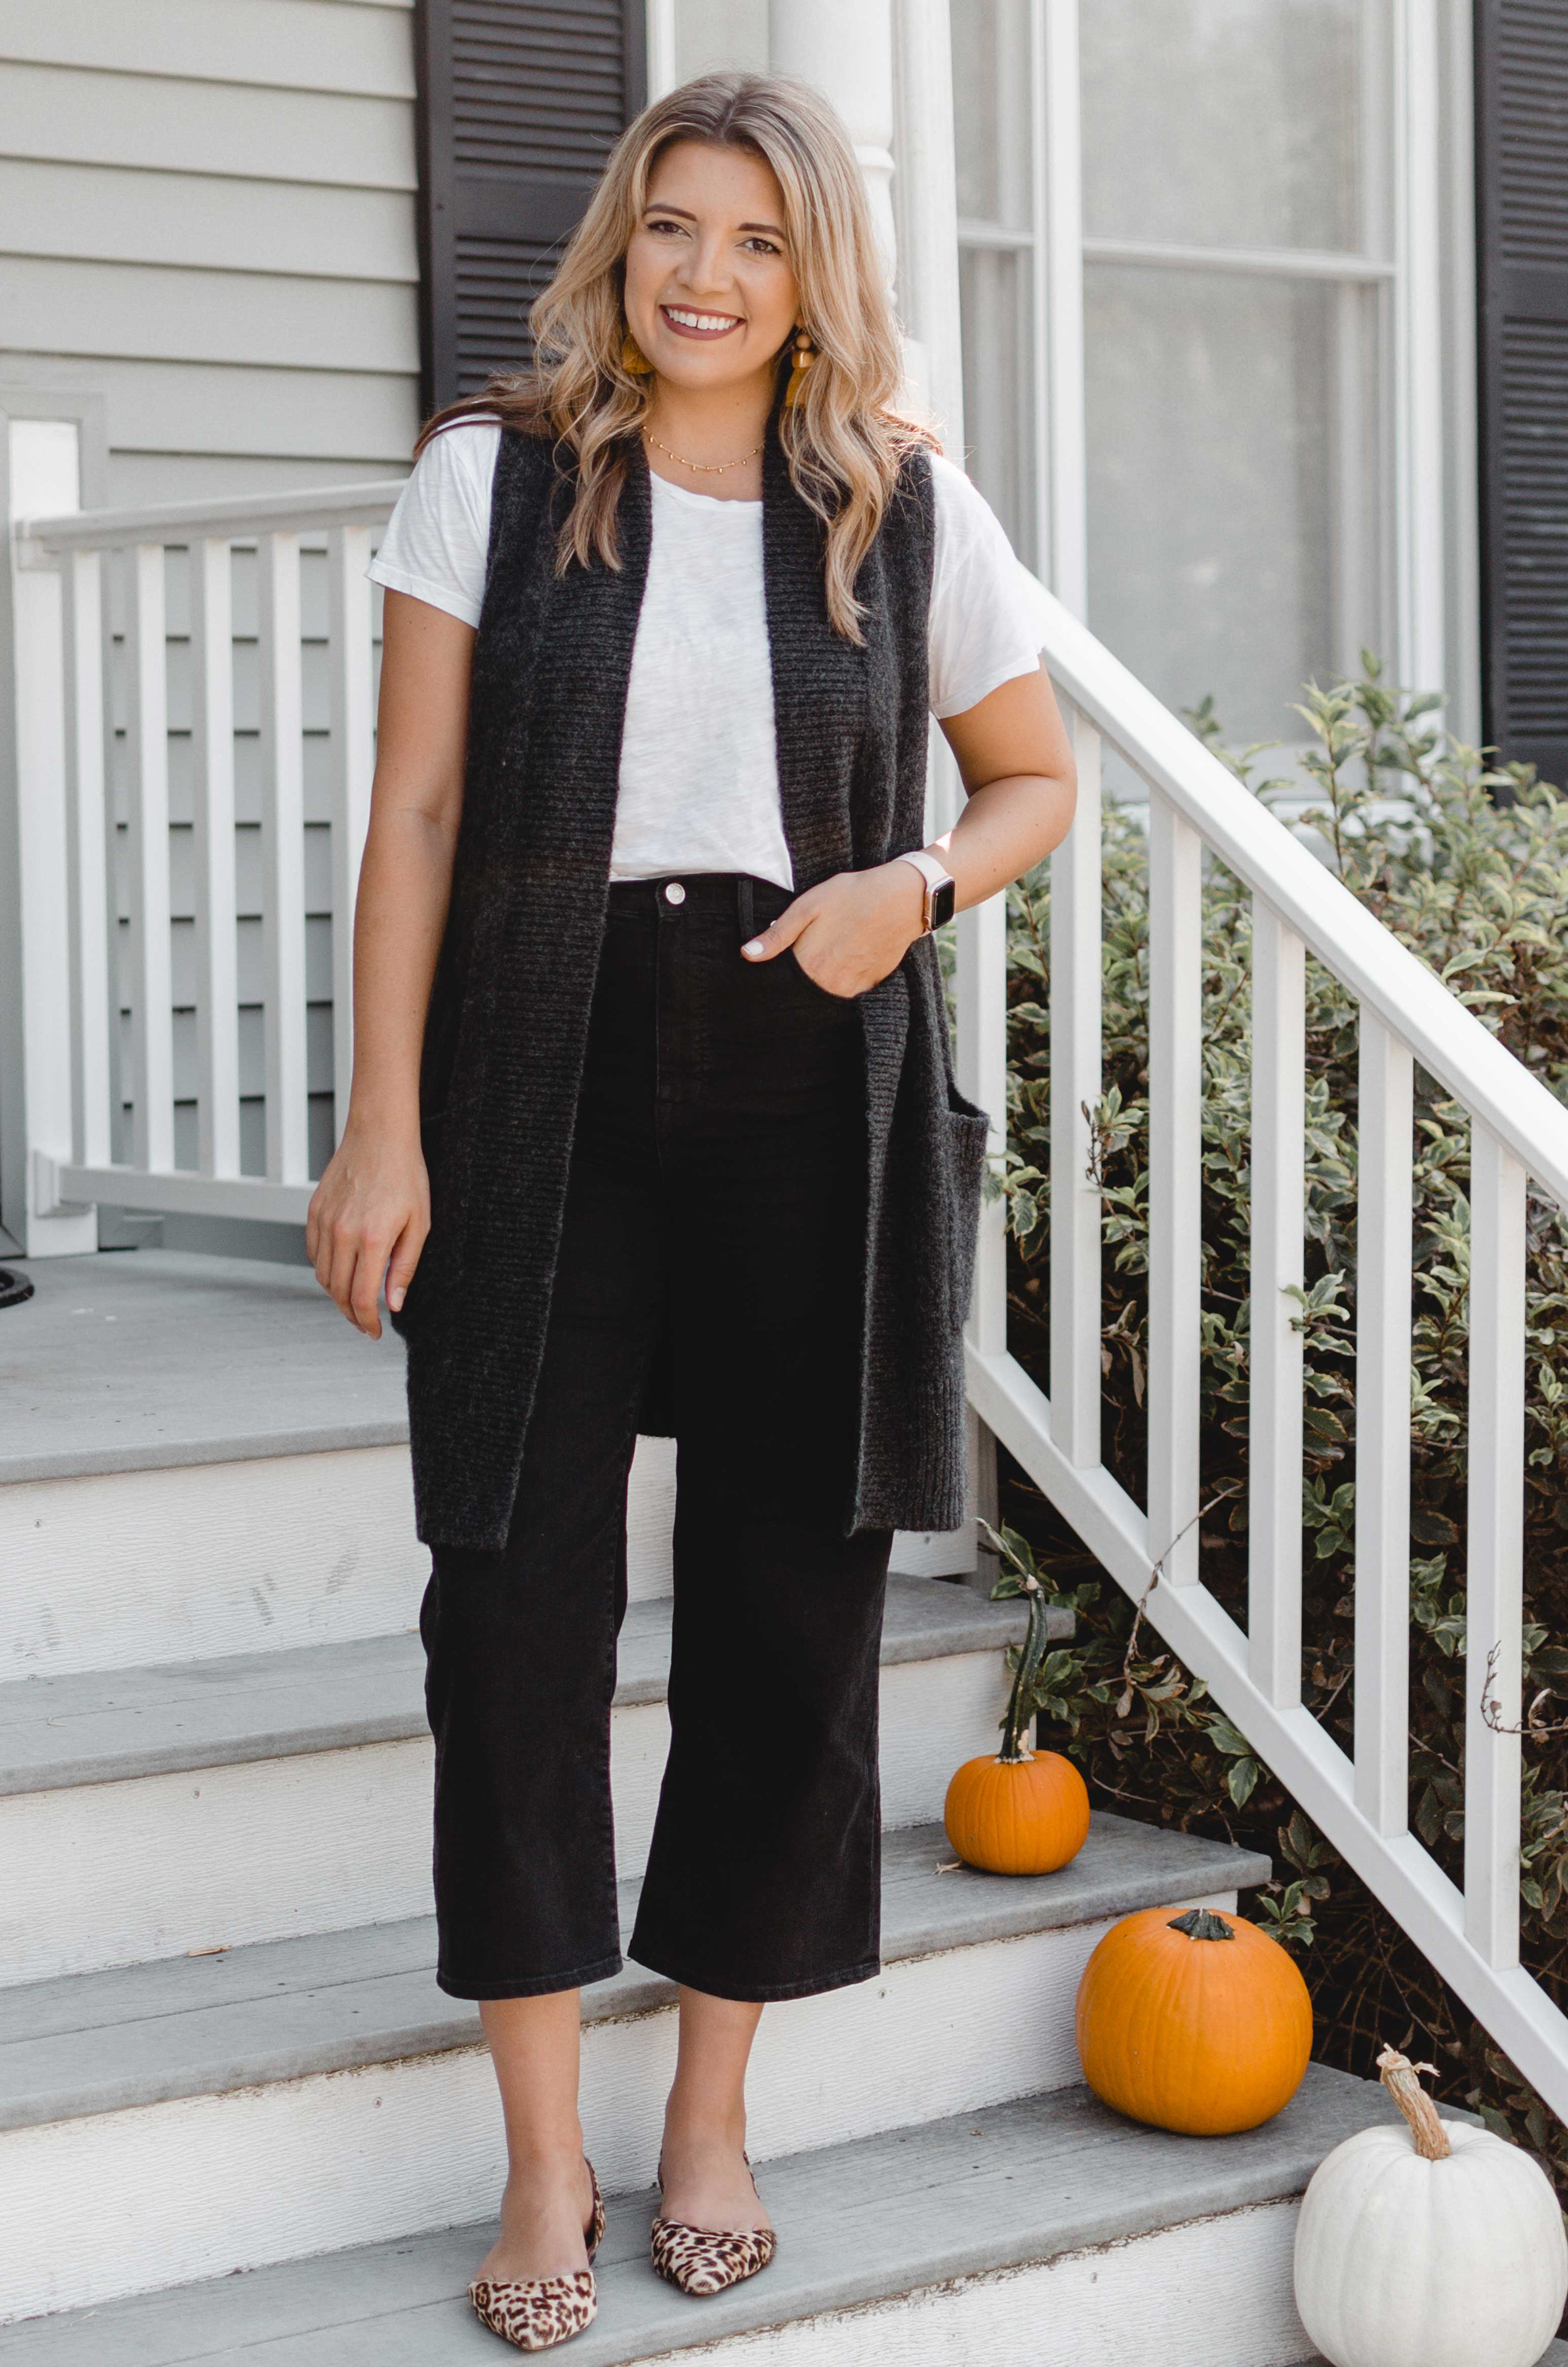 Virginia blogger, Lauren Dix, shares six wide leg cropped jeans outfits for fall. From work to weekend, see all the outfits here!